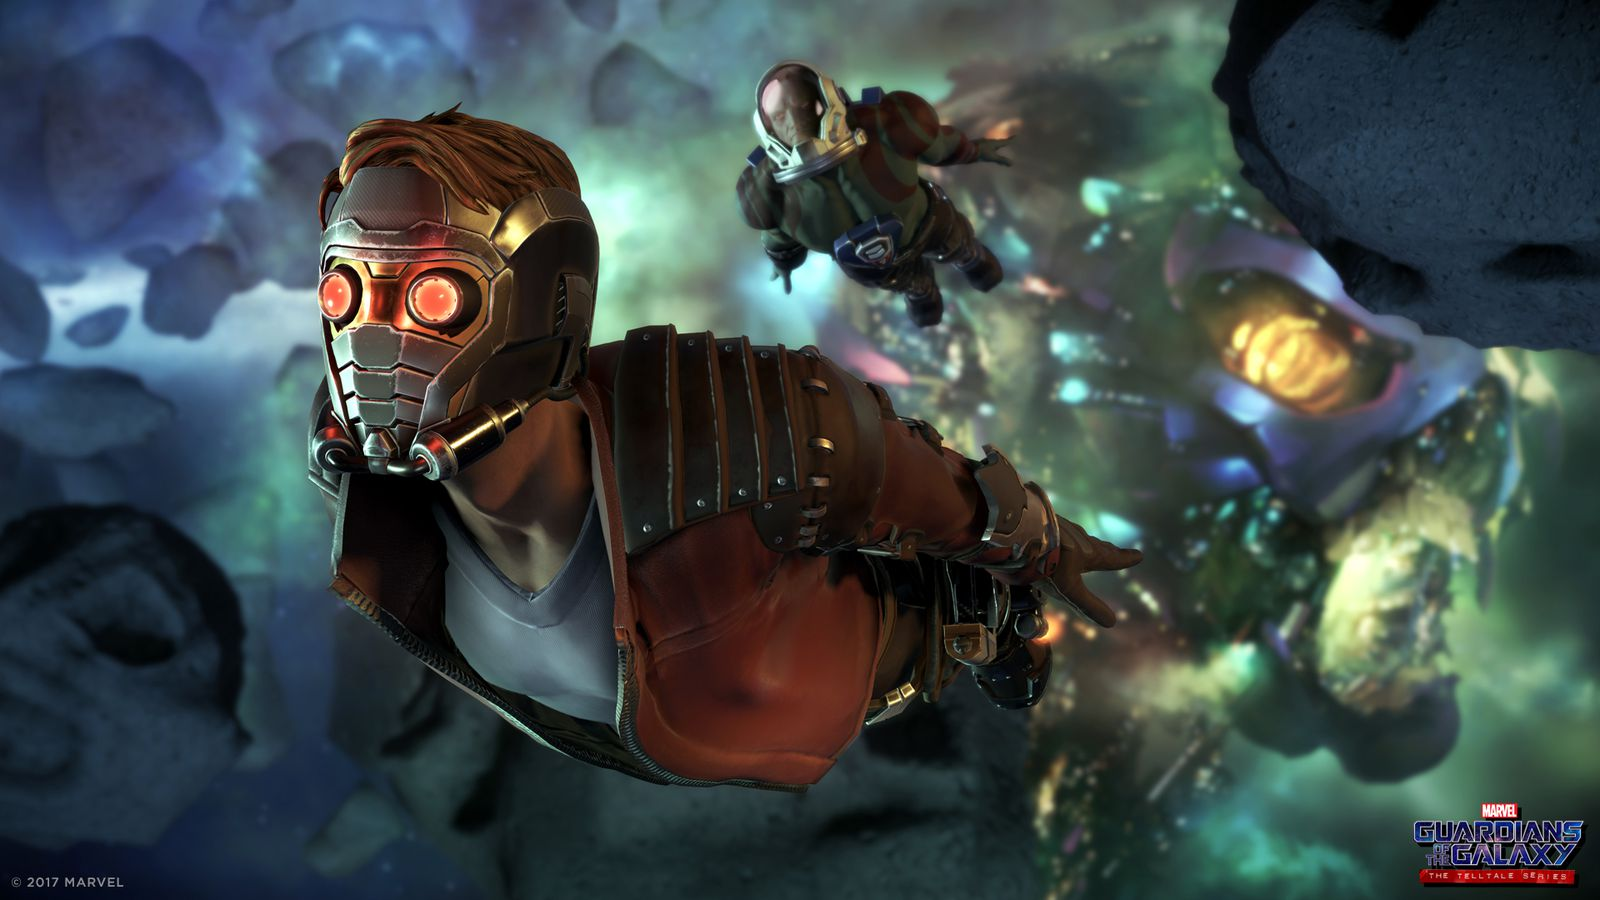 Telltale's Guardians of the Galaxy game has a familiar Easter egg